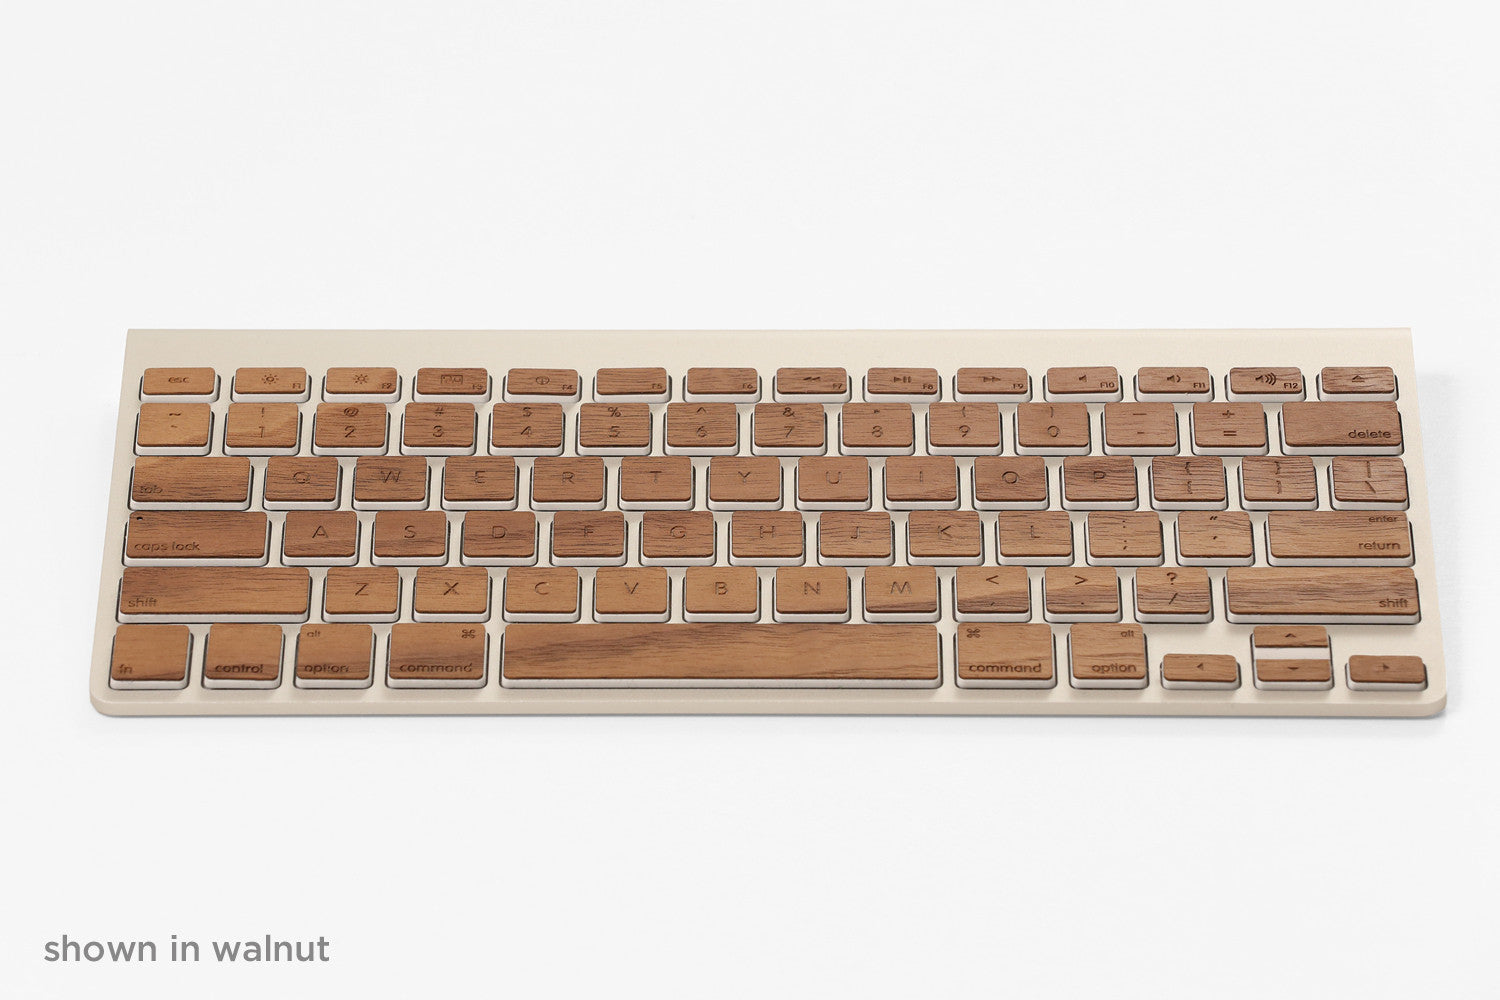 Lazerwood Keys for Apple Magic Keyboards